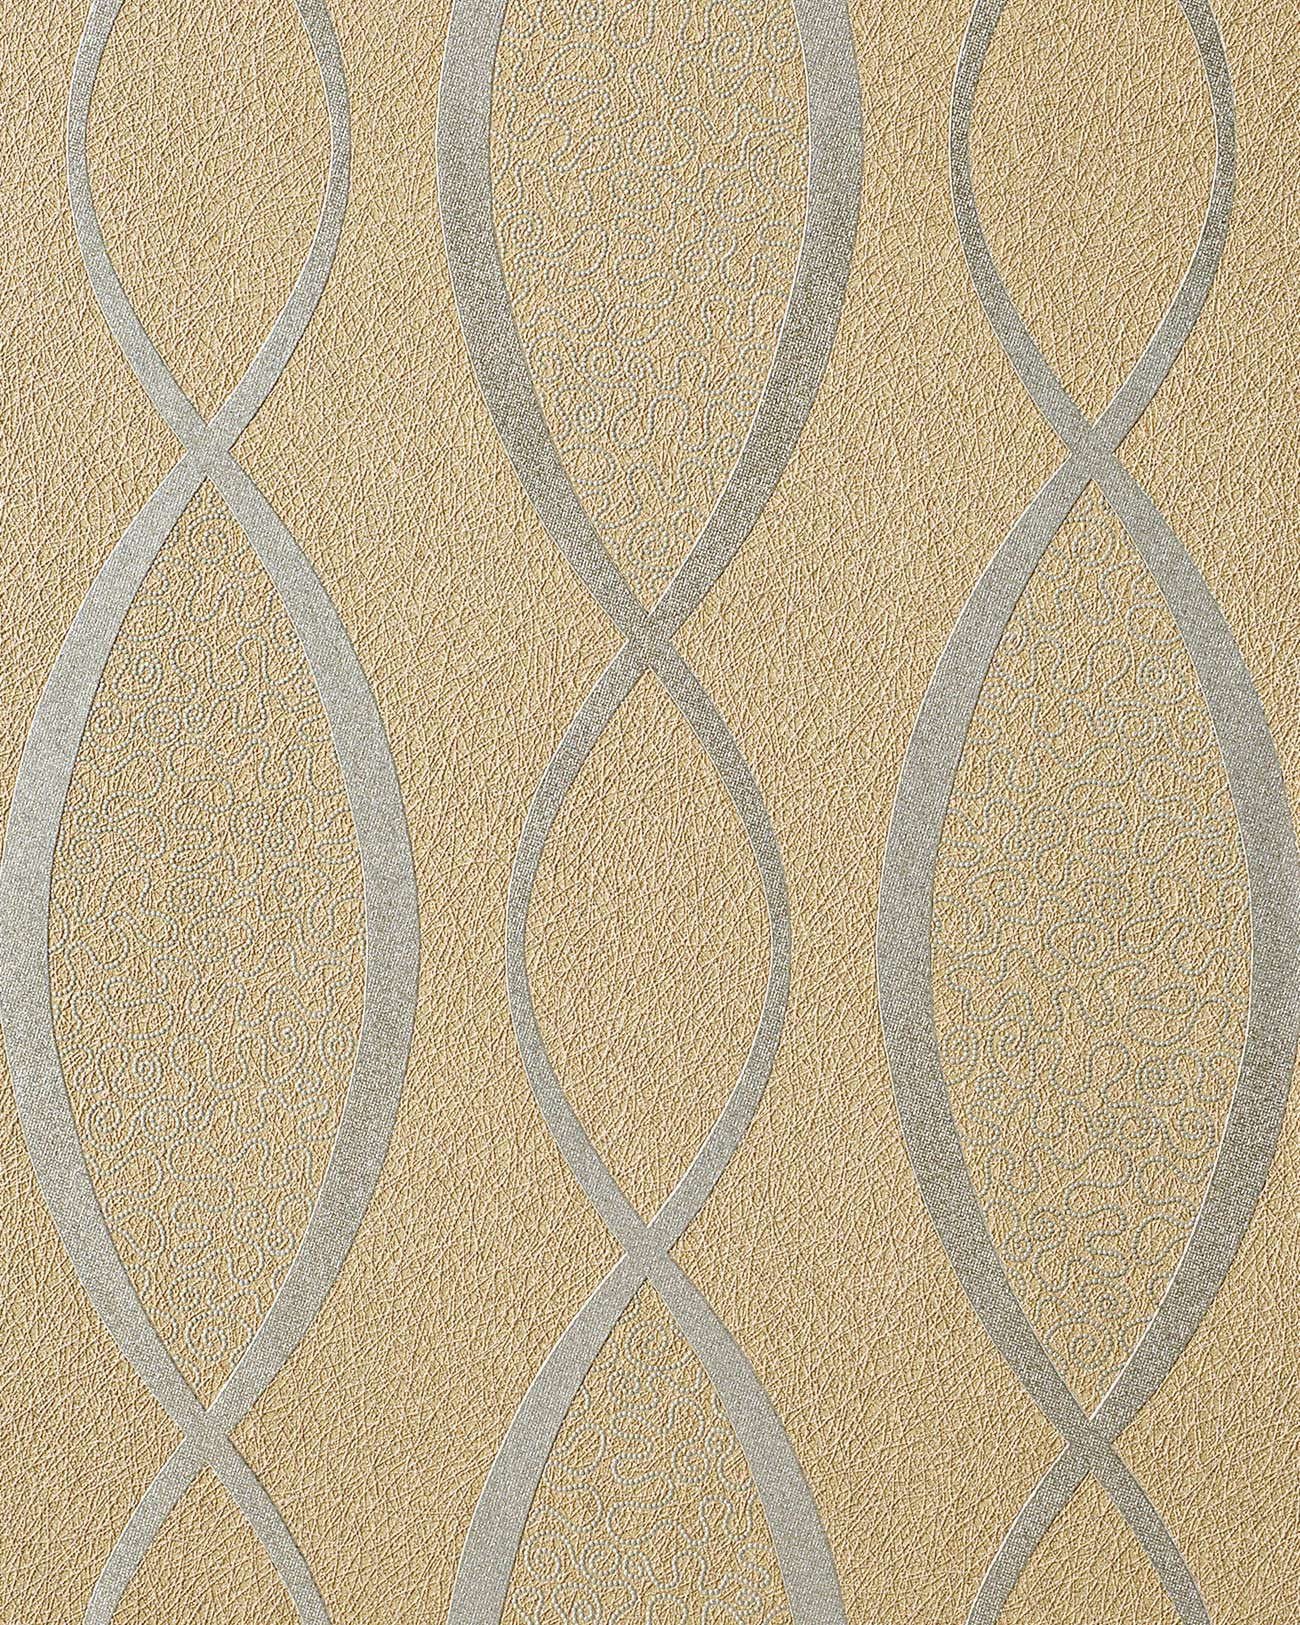 70s style textured vinyl wallcovering wallpaper fashion